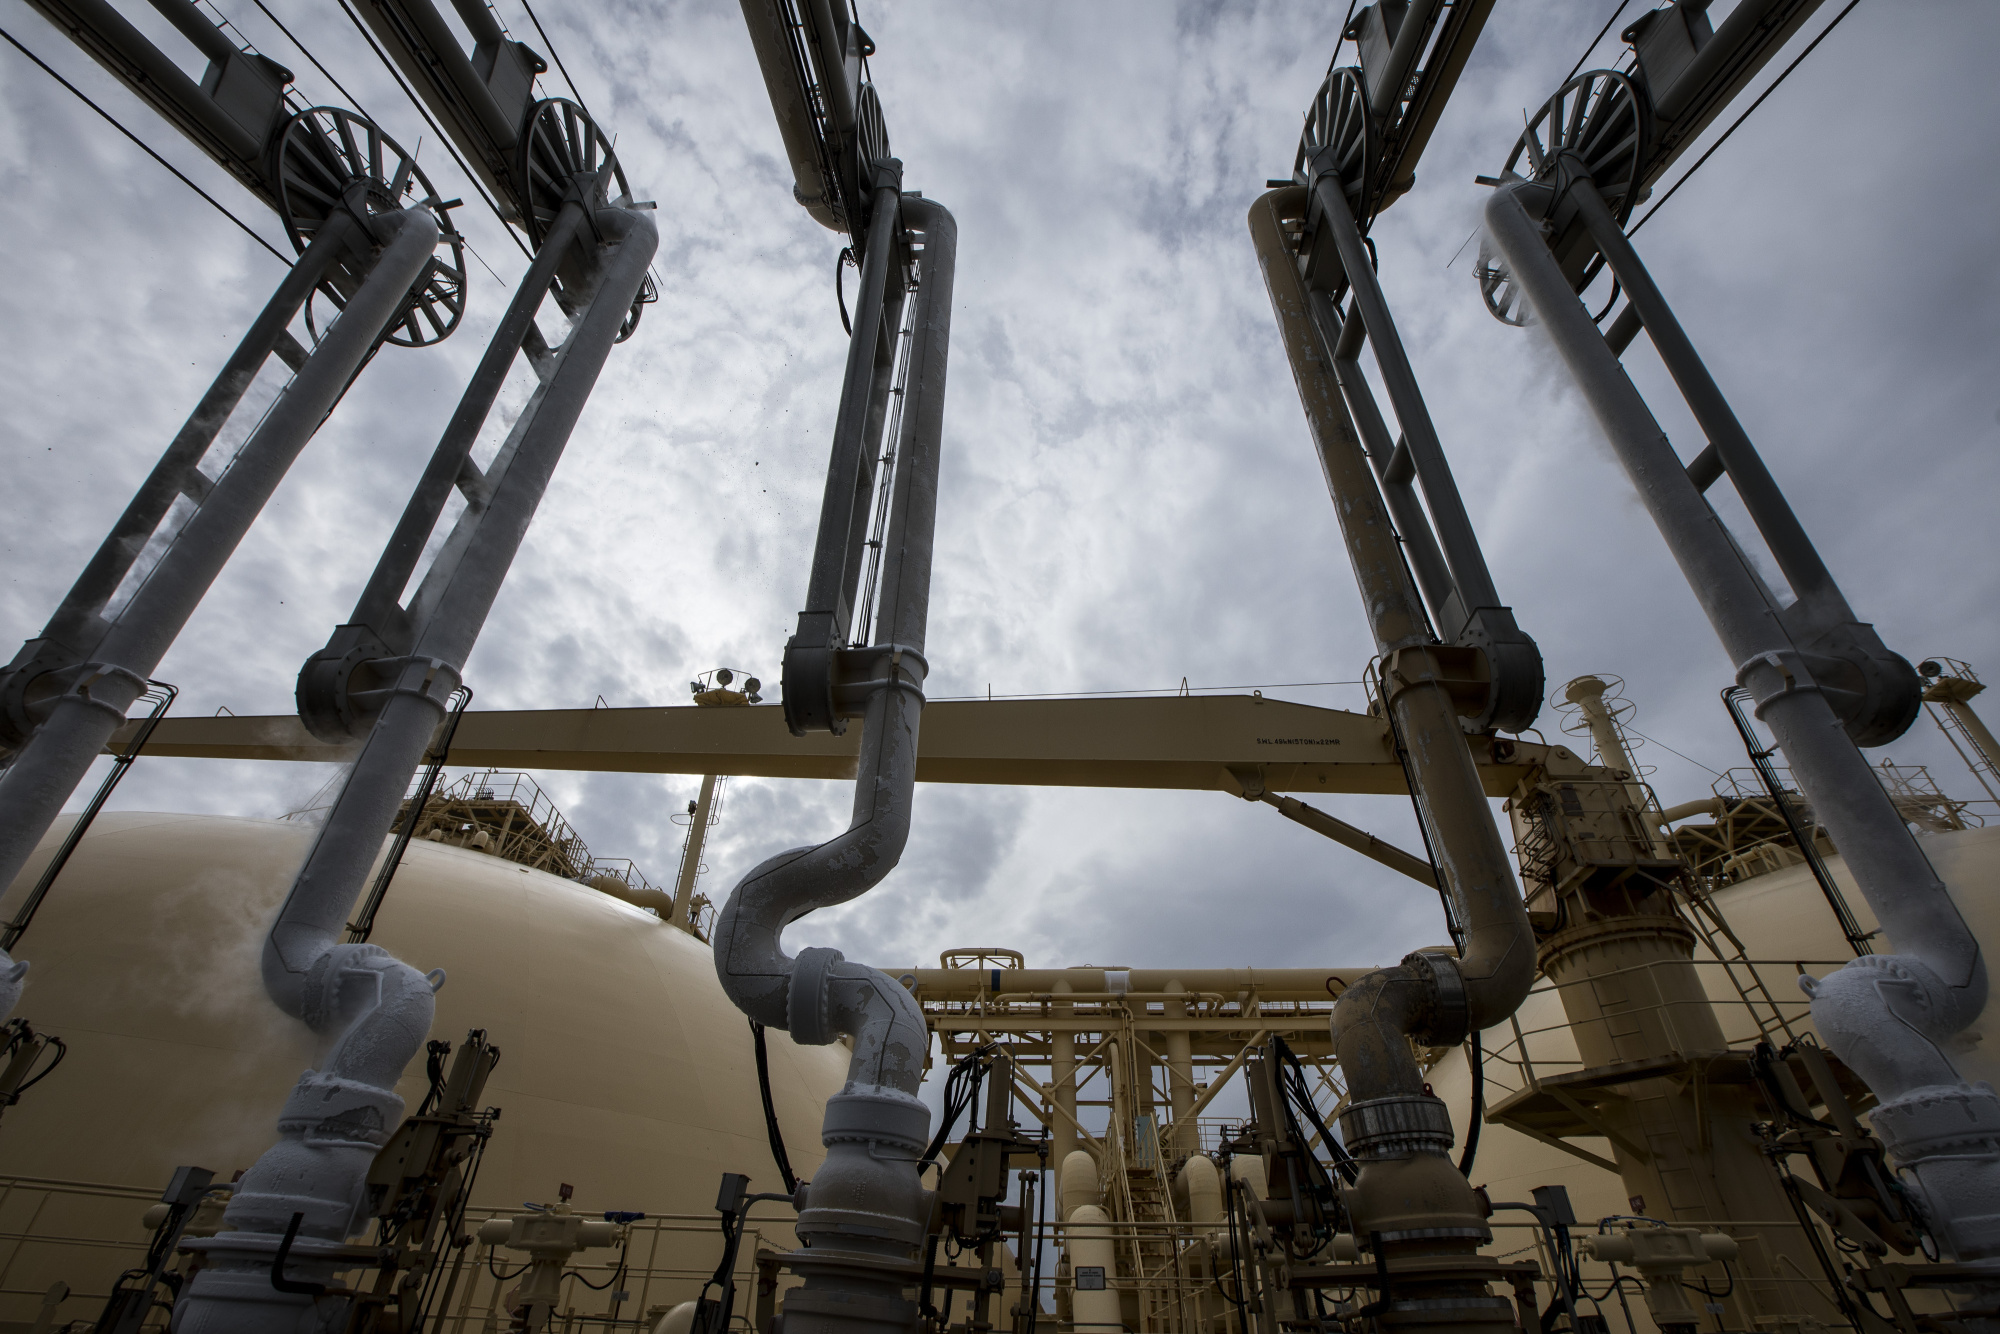 bloomberg.com - Matthew Hill - Mozambique Expects $95 Billion of Gas Revenue Over 25 Years